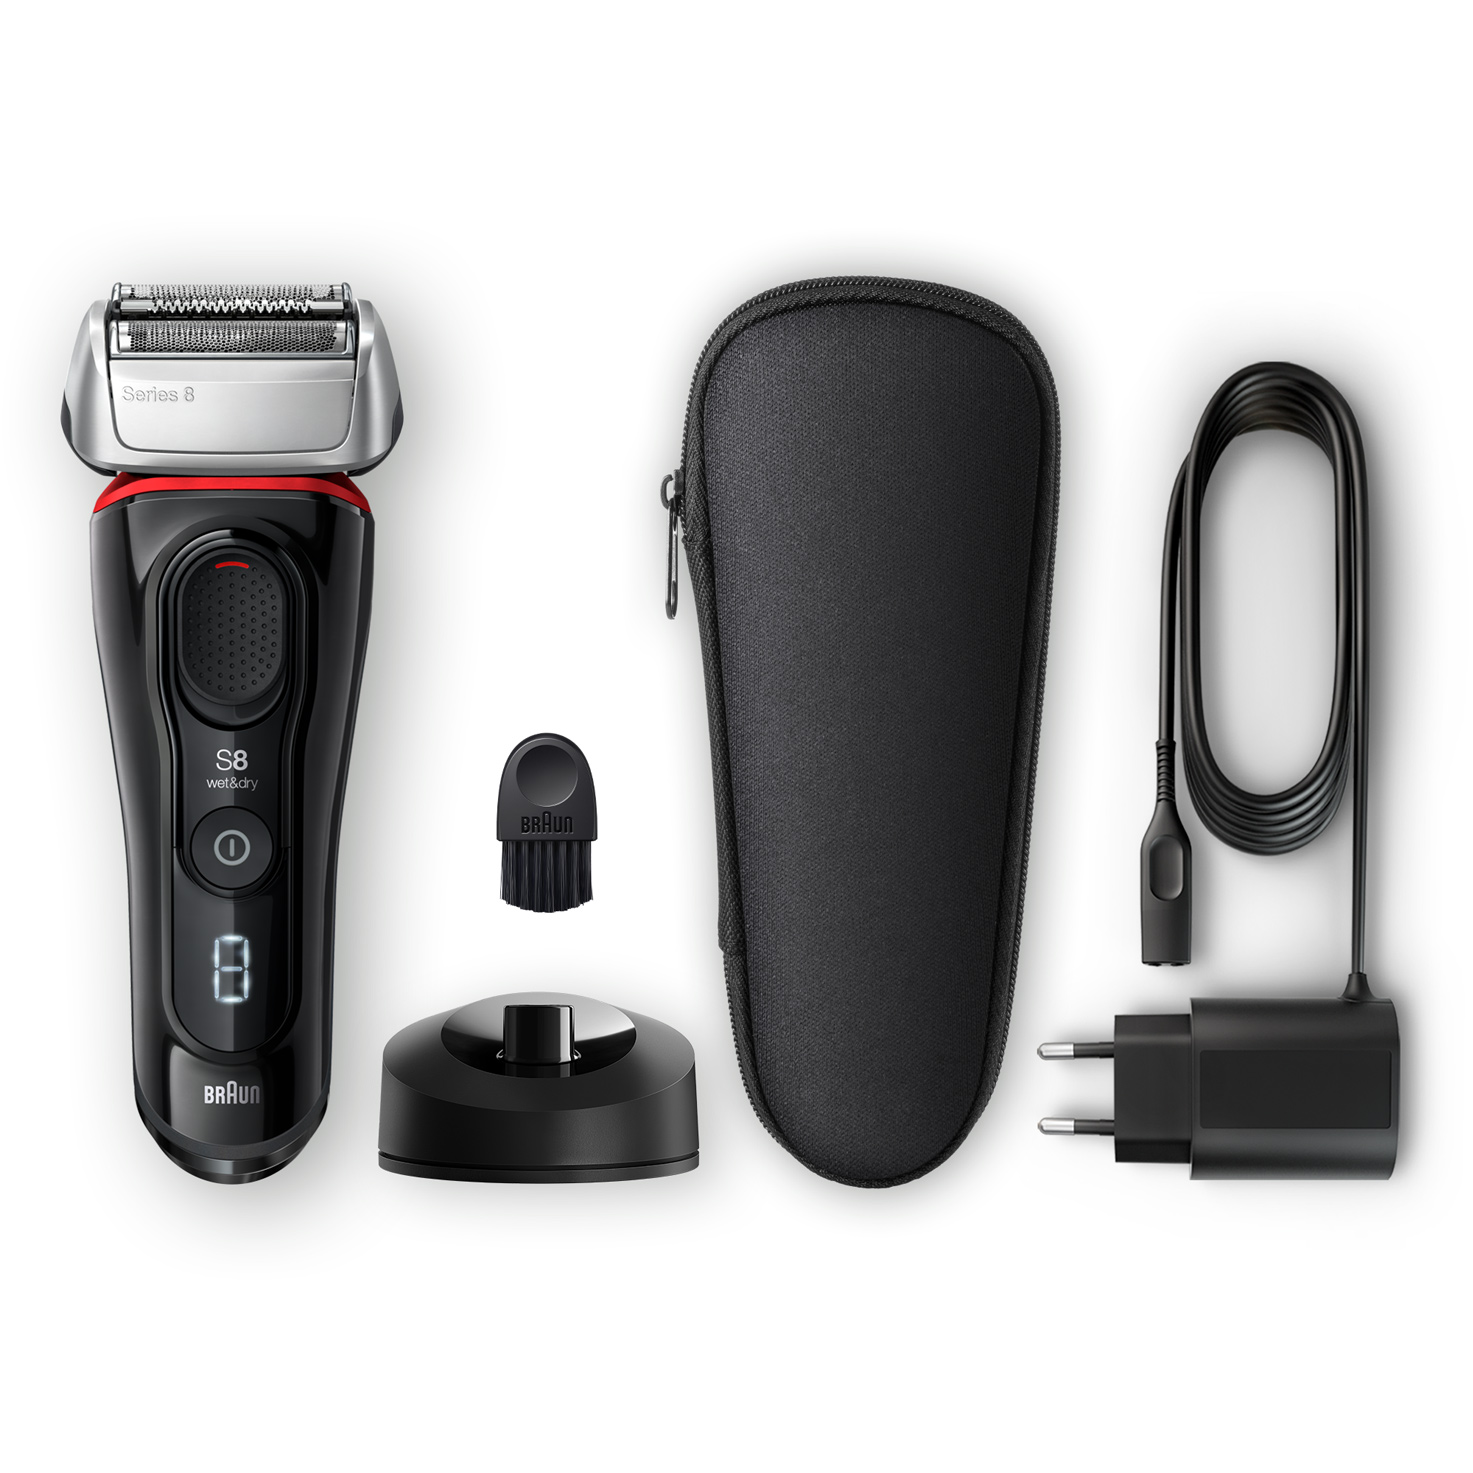 Series 8 8340s shaver - What´s in the box